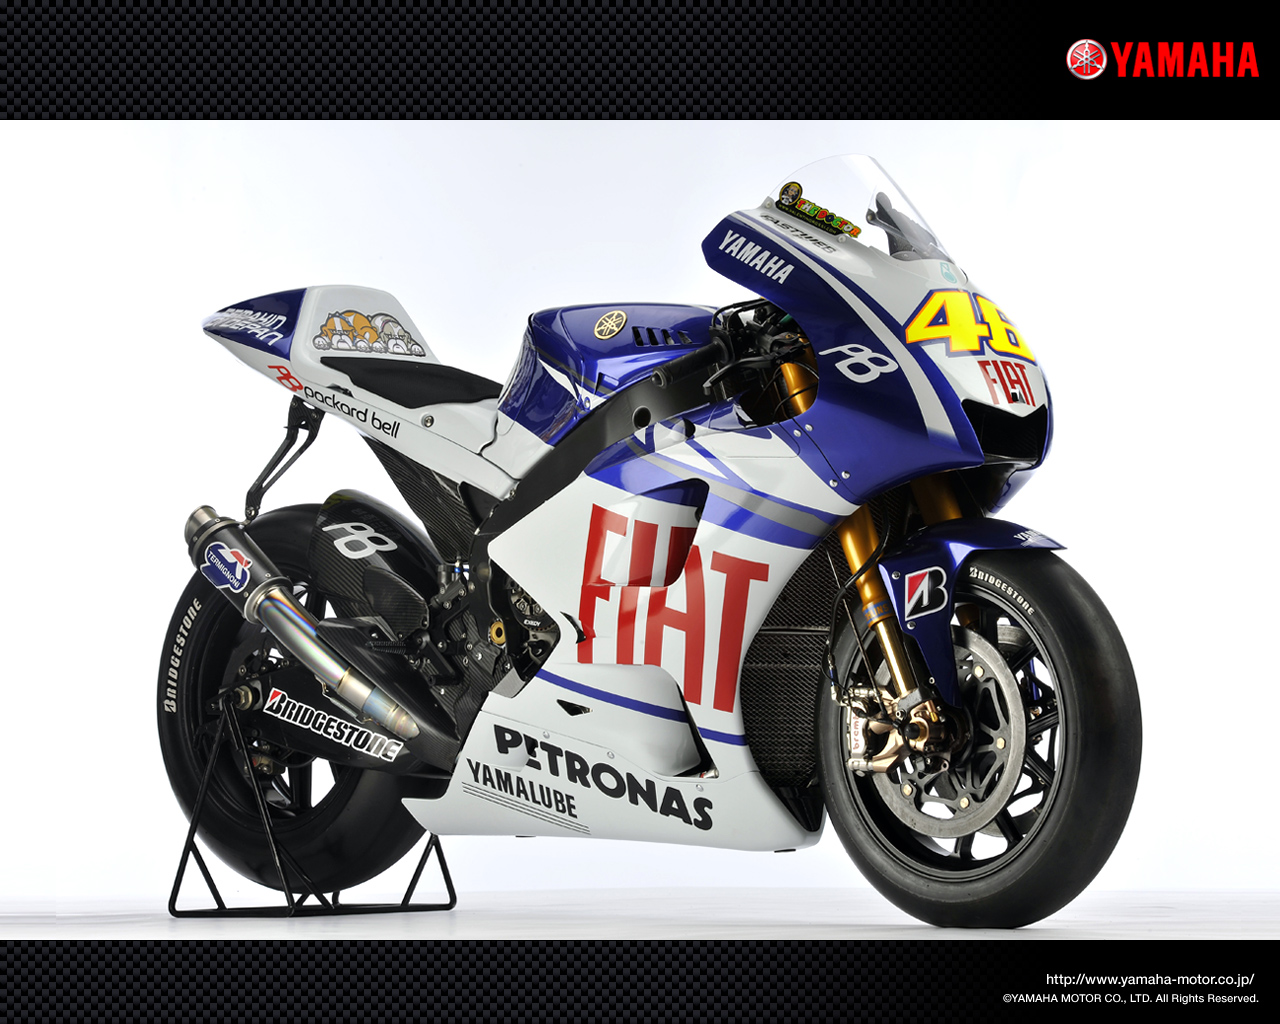 http://1.bp.blogspot.com/_-h6fw60NUr0/S6kgL_8hJtI/AAAAAAAAALI/s2pO1tC61dY/s1600/Racing%20Wallpapers%20%280%29.jpg